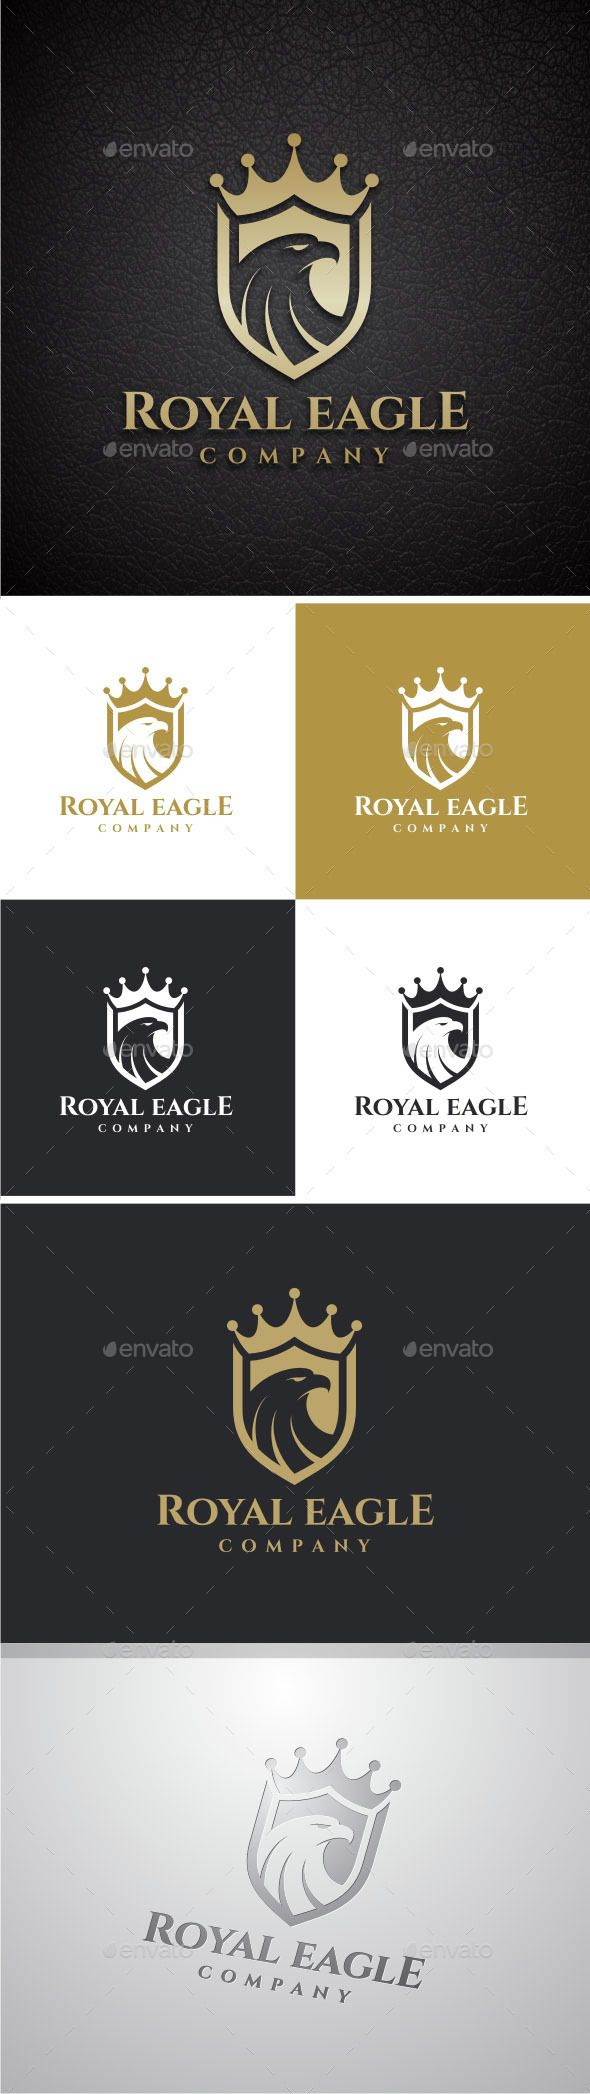 Royal Eagle Logo — Photoshop PSD #vector #graphic • Available here → https://graphicriver.net/item/royal-eagle-logo/8567477?ref=pxcr